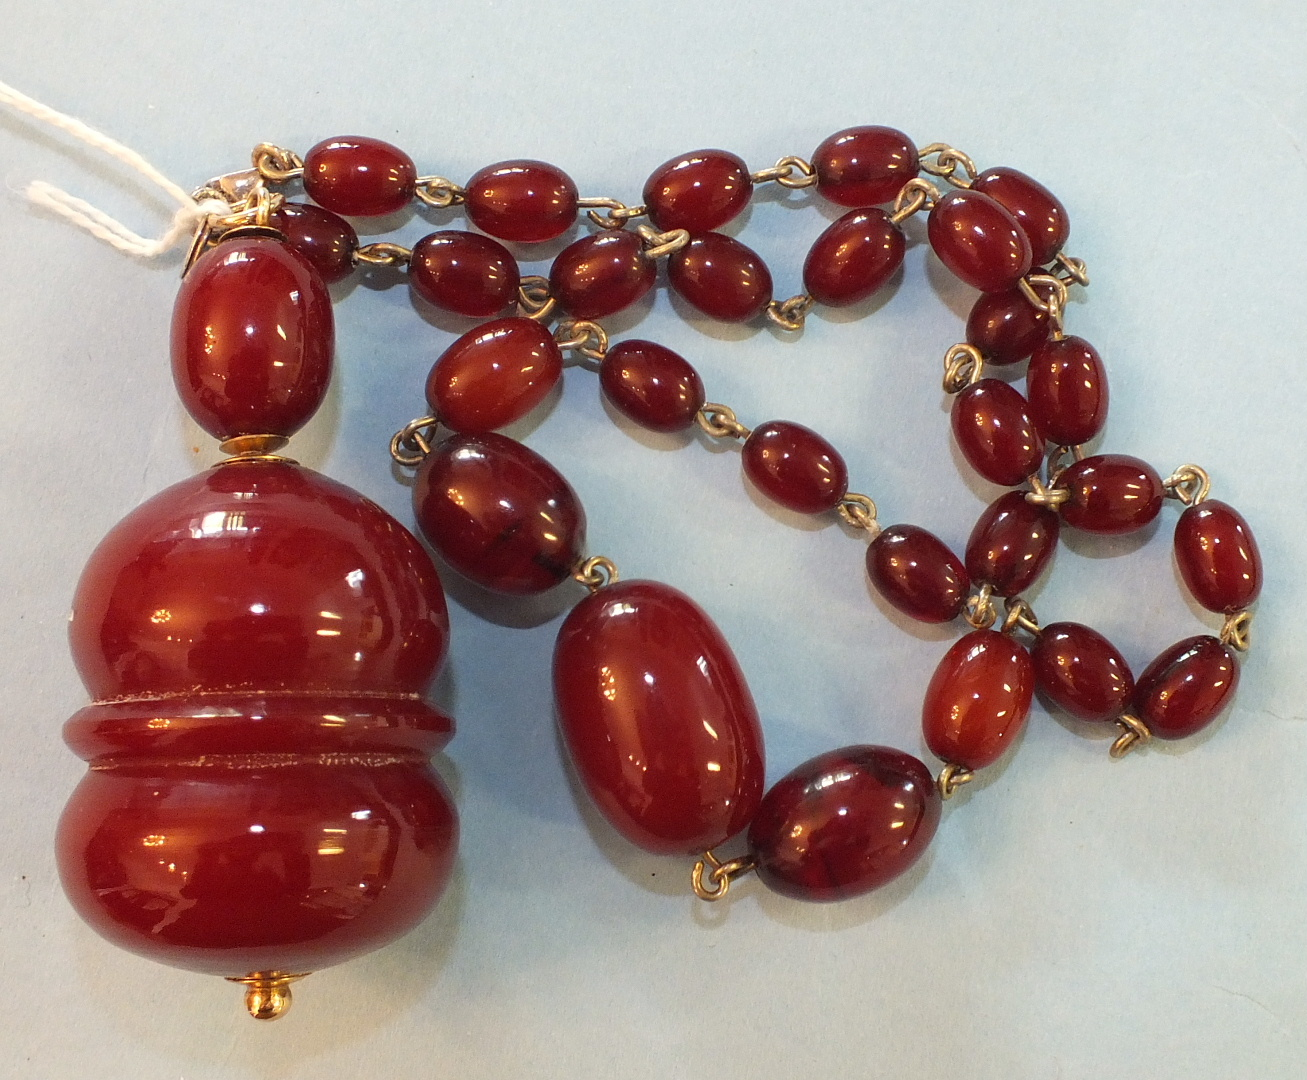 Lot 189 - A very large cherry red Bakelite amber pendant of baluster form, with yellow metal mounts and a